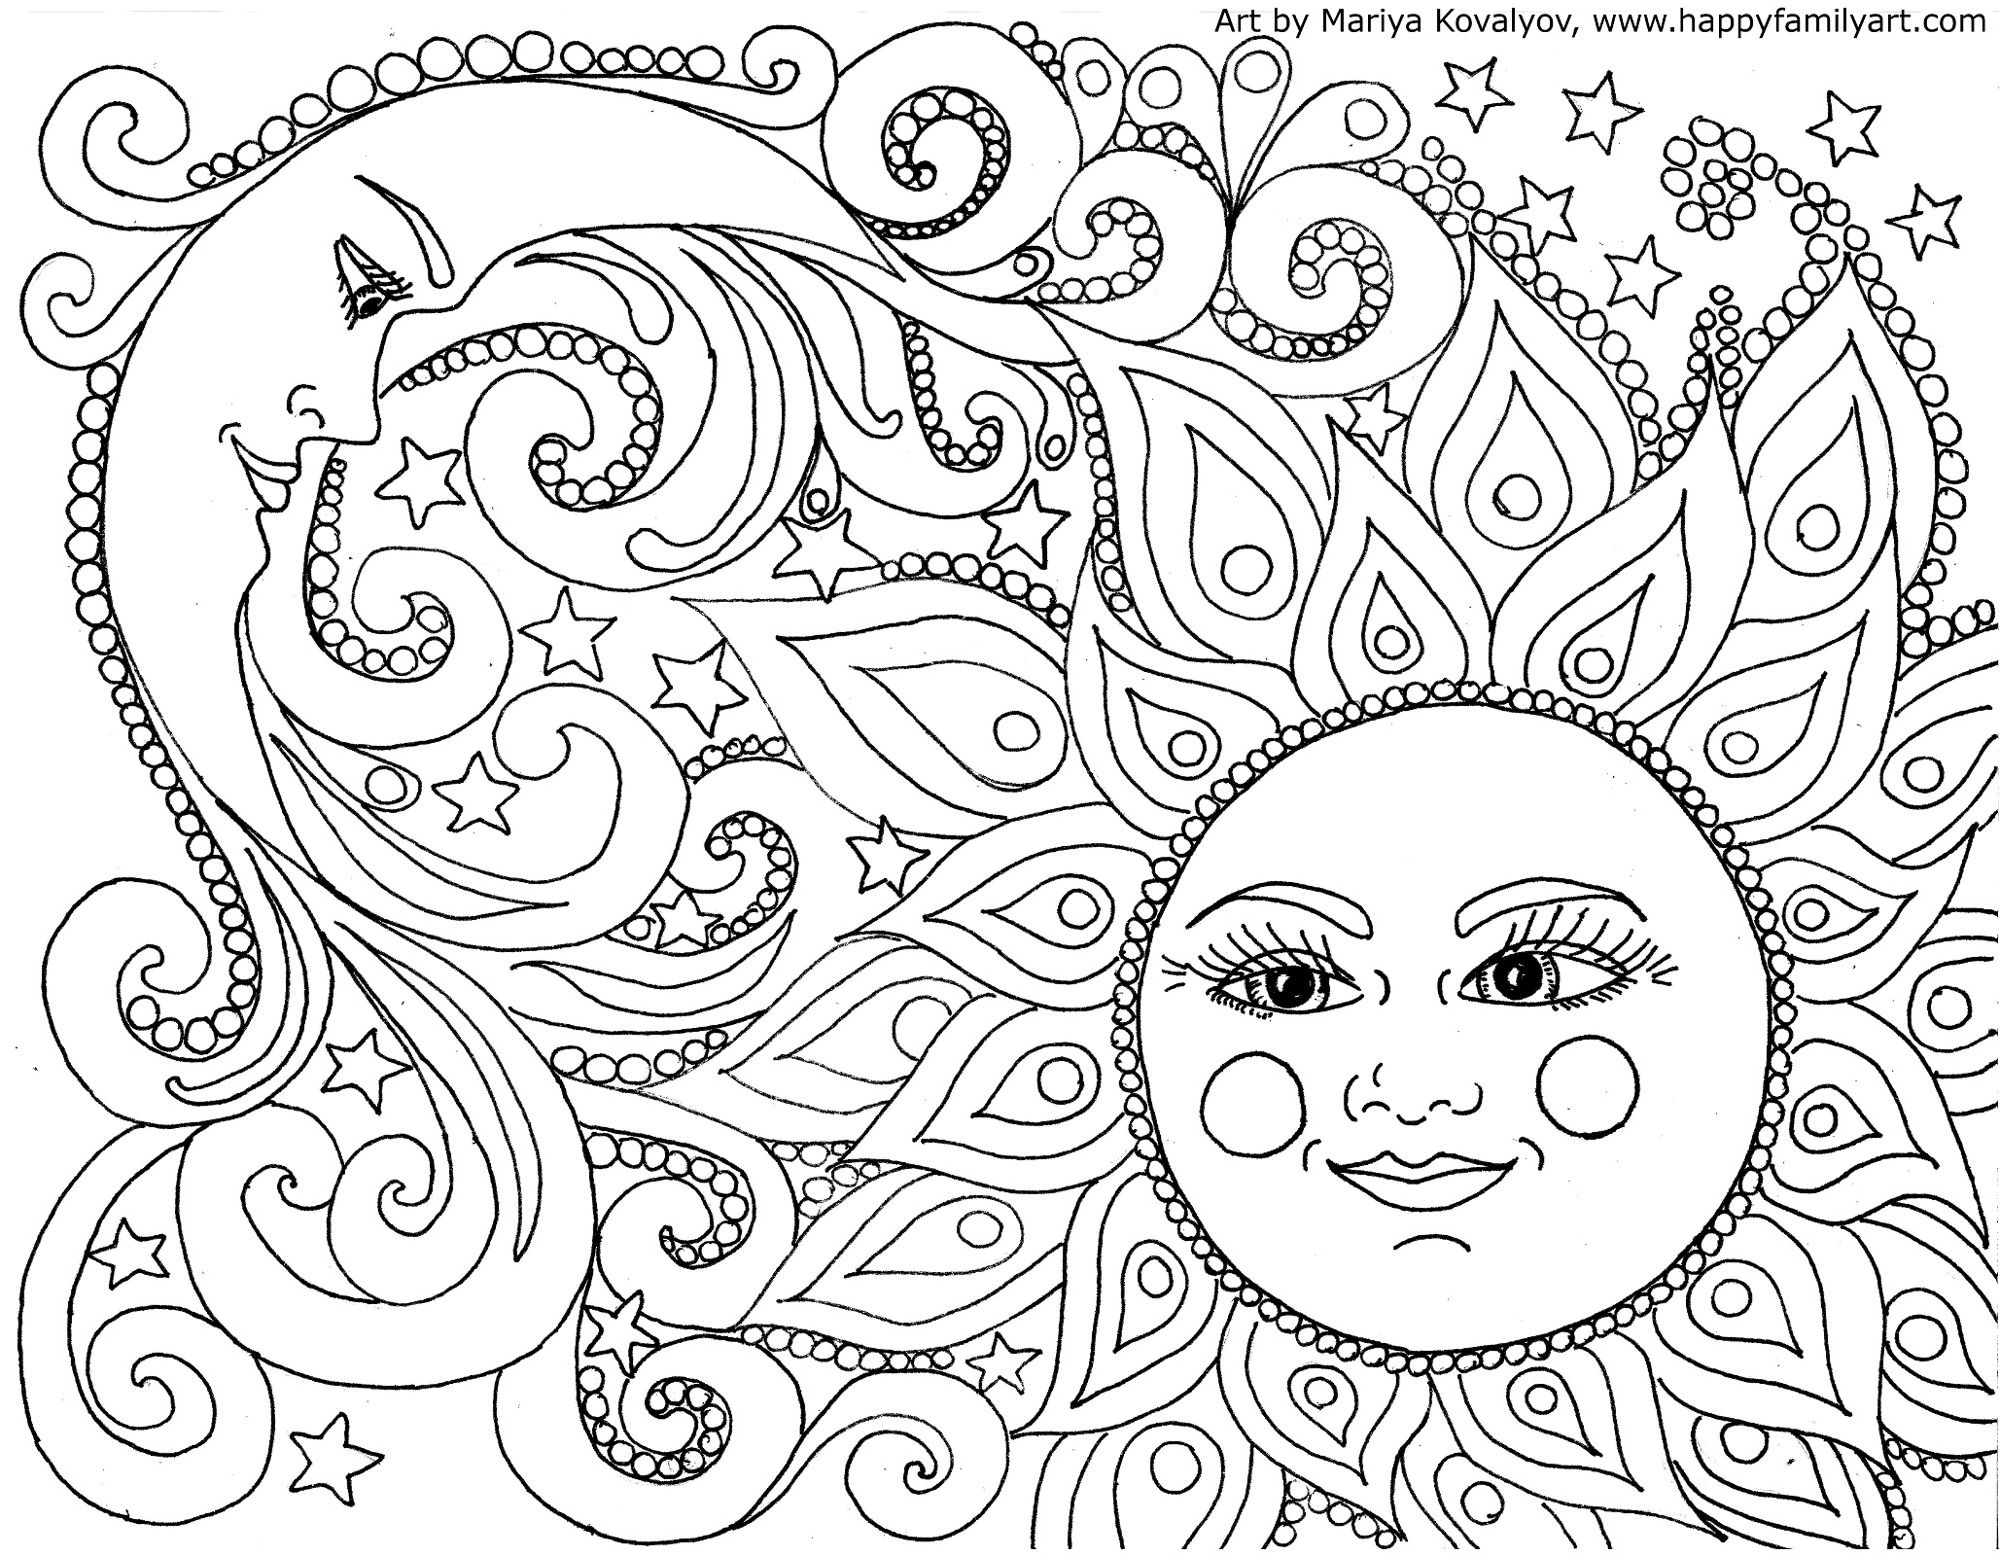 Free coloring pages that you color online - I Made Many Great Fun And Original Coloring Pages Color Your Heart Out